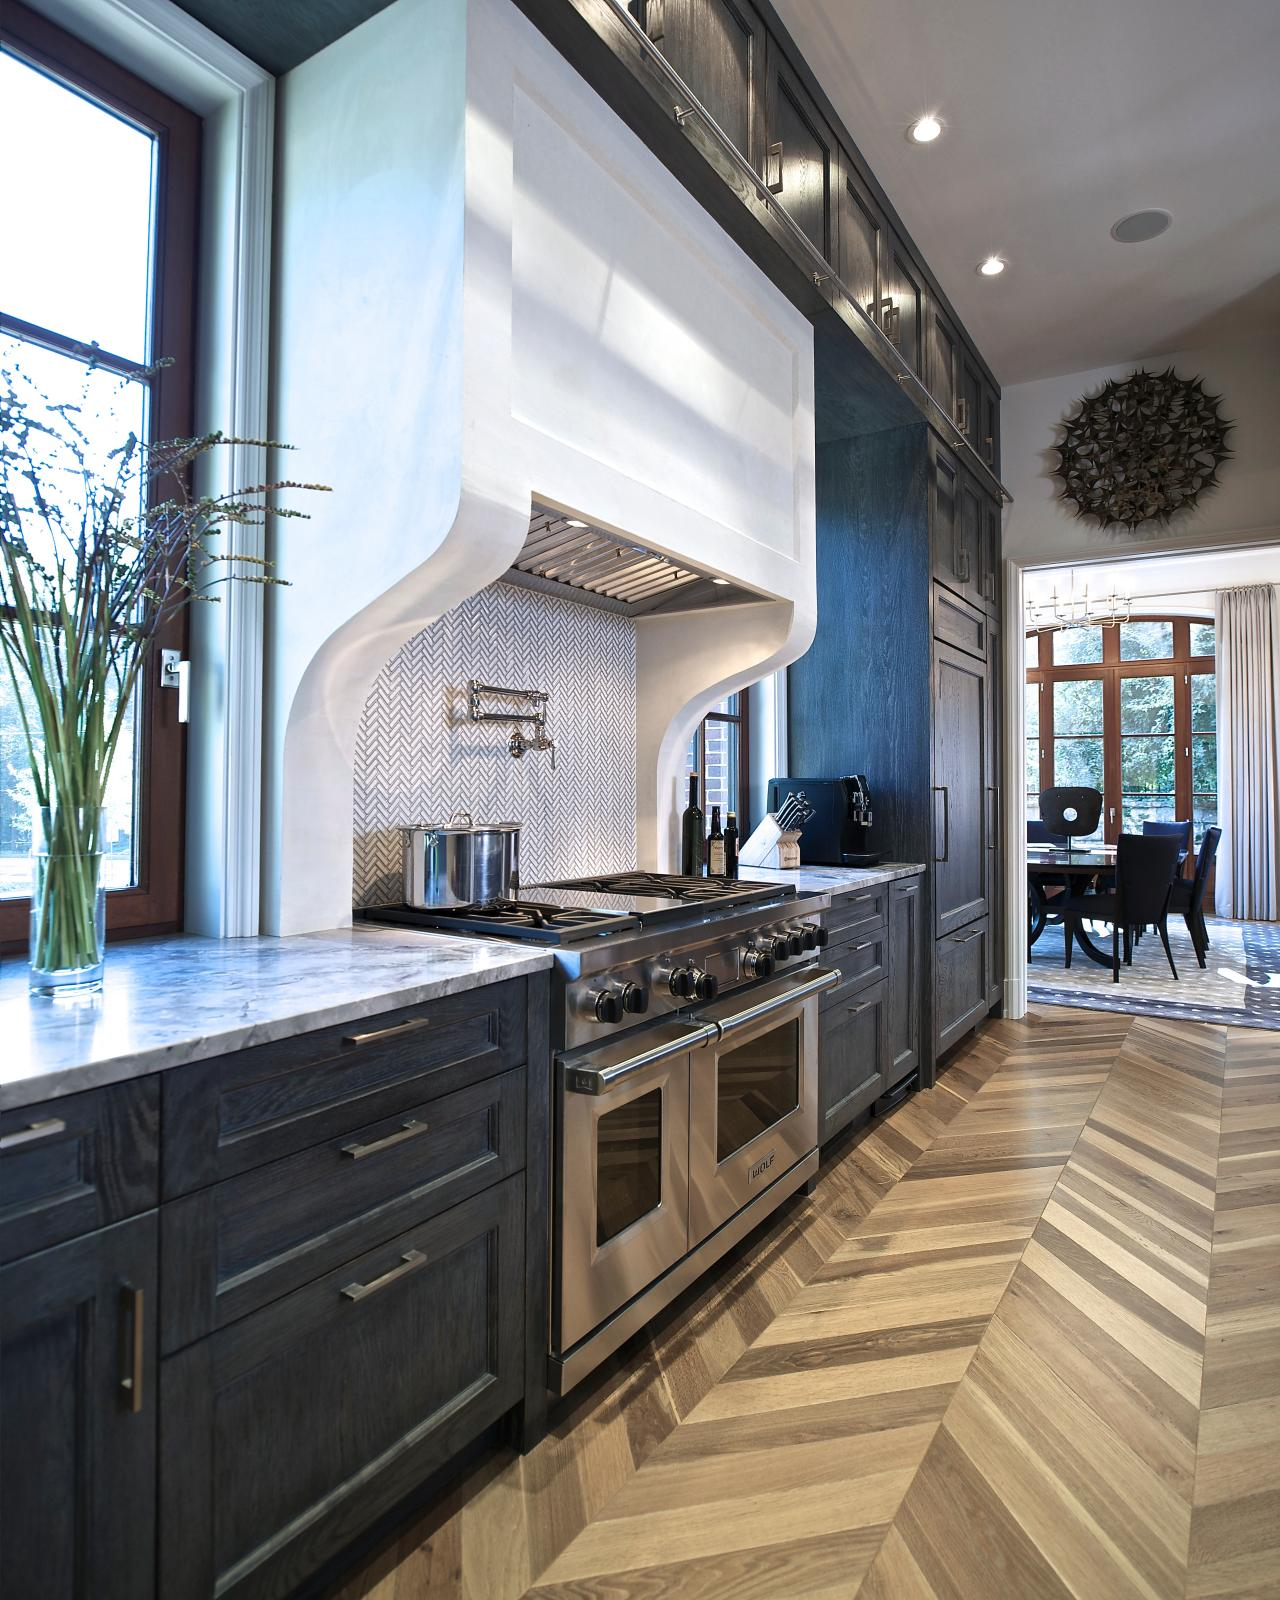 Repainting Kitchen Cabinets Pictures Ideas From Hgtv: Transitional Kitchen Boasts High-Contrast Look